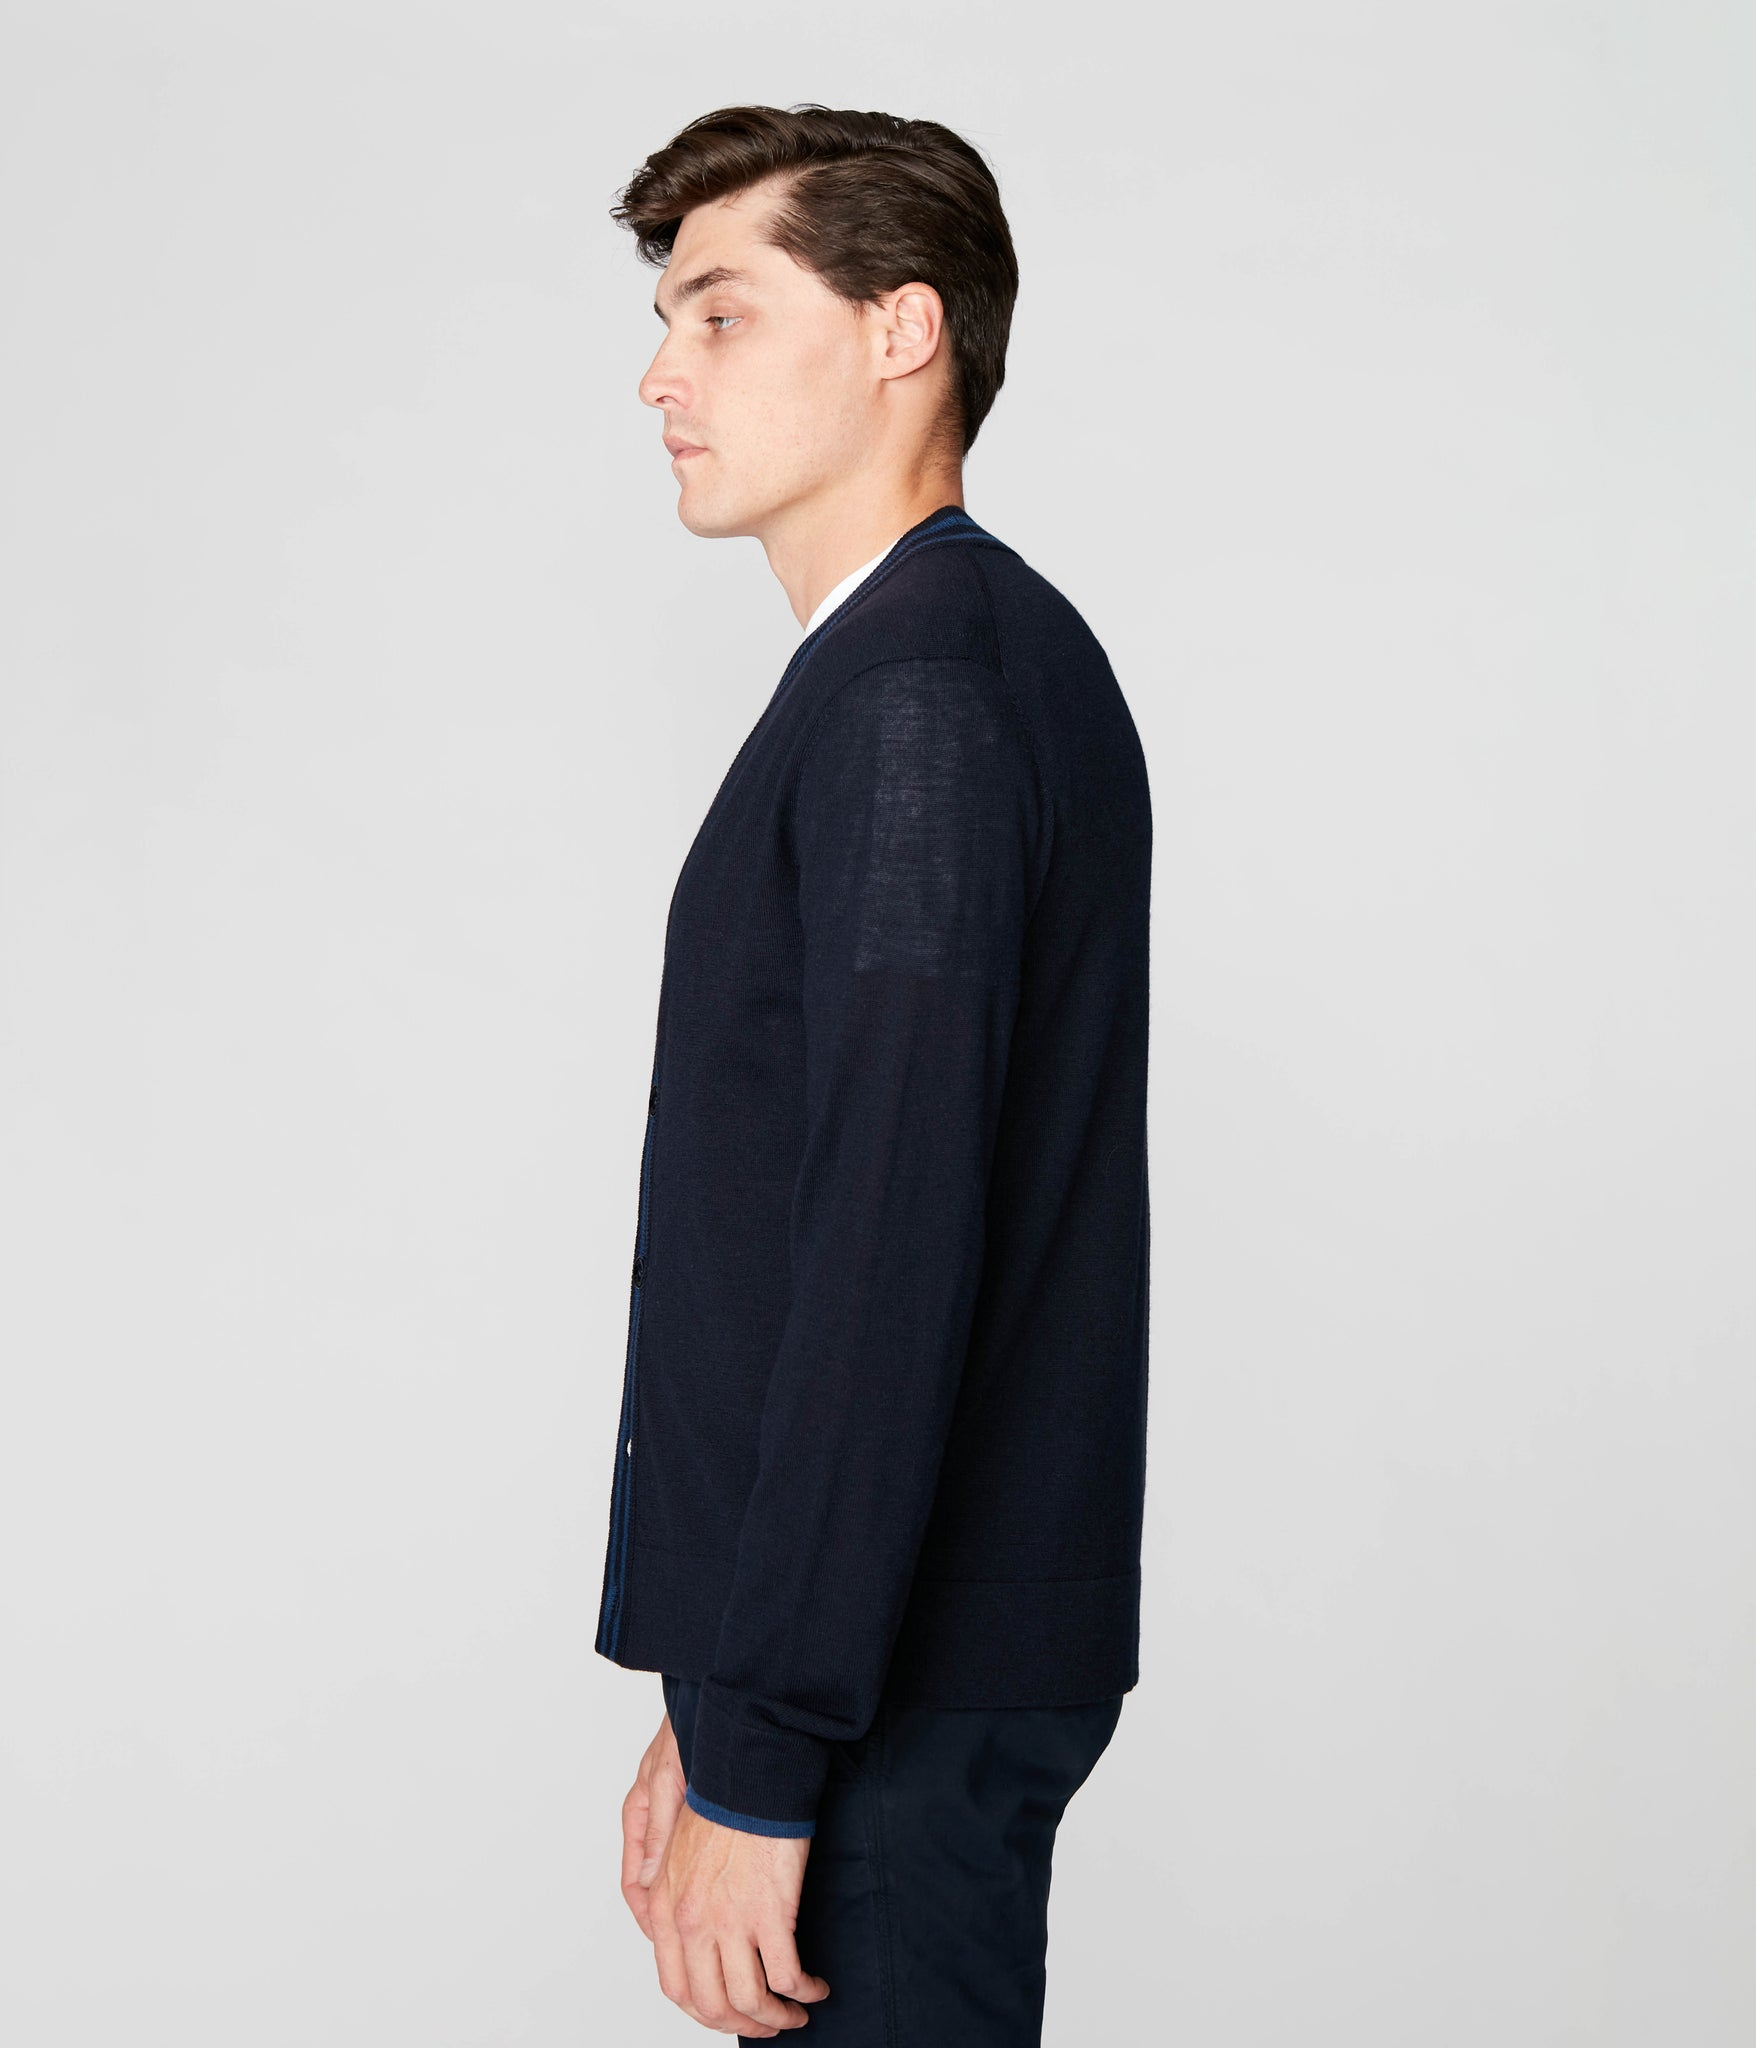 Edge Cardigan in Merino Wool - Navy